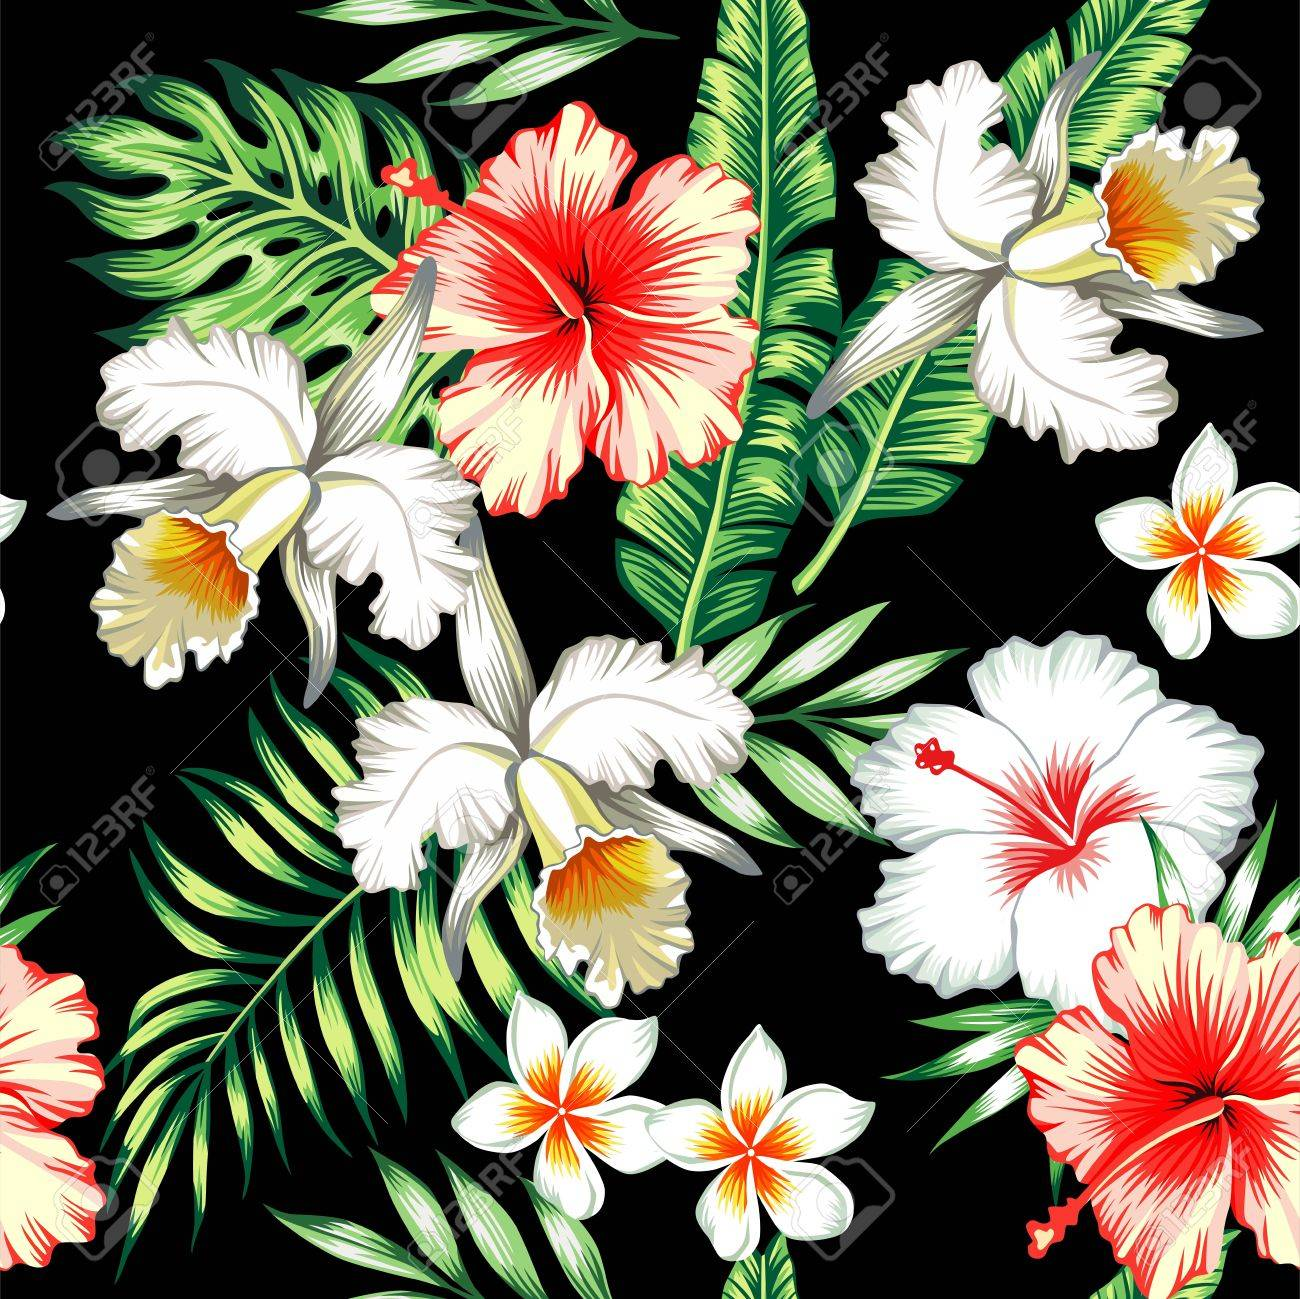 Tropic Summer Flower Hibiscus Lily And Orchid Seamless Pattern With Palm Banana Leaf Plants